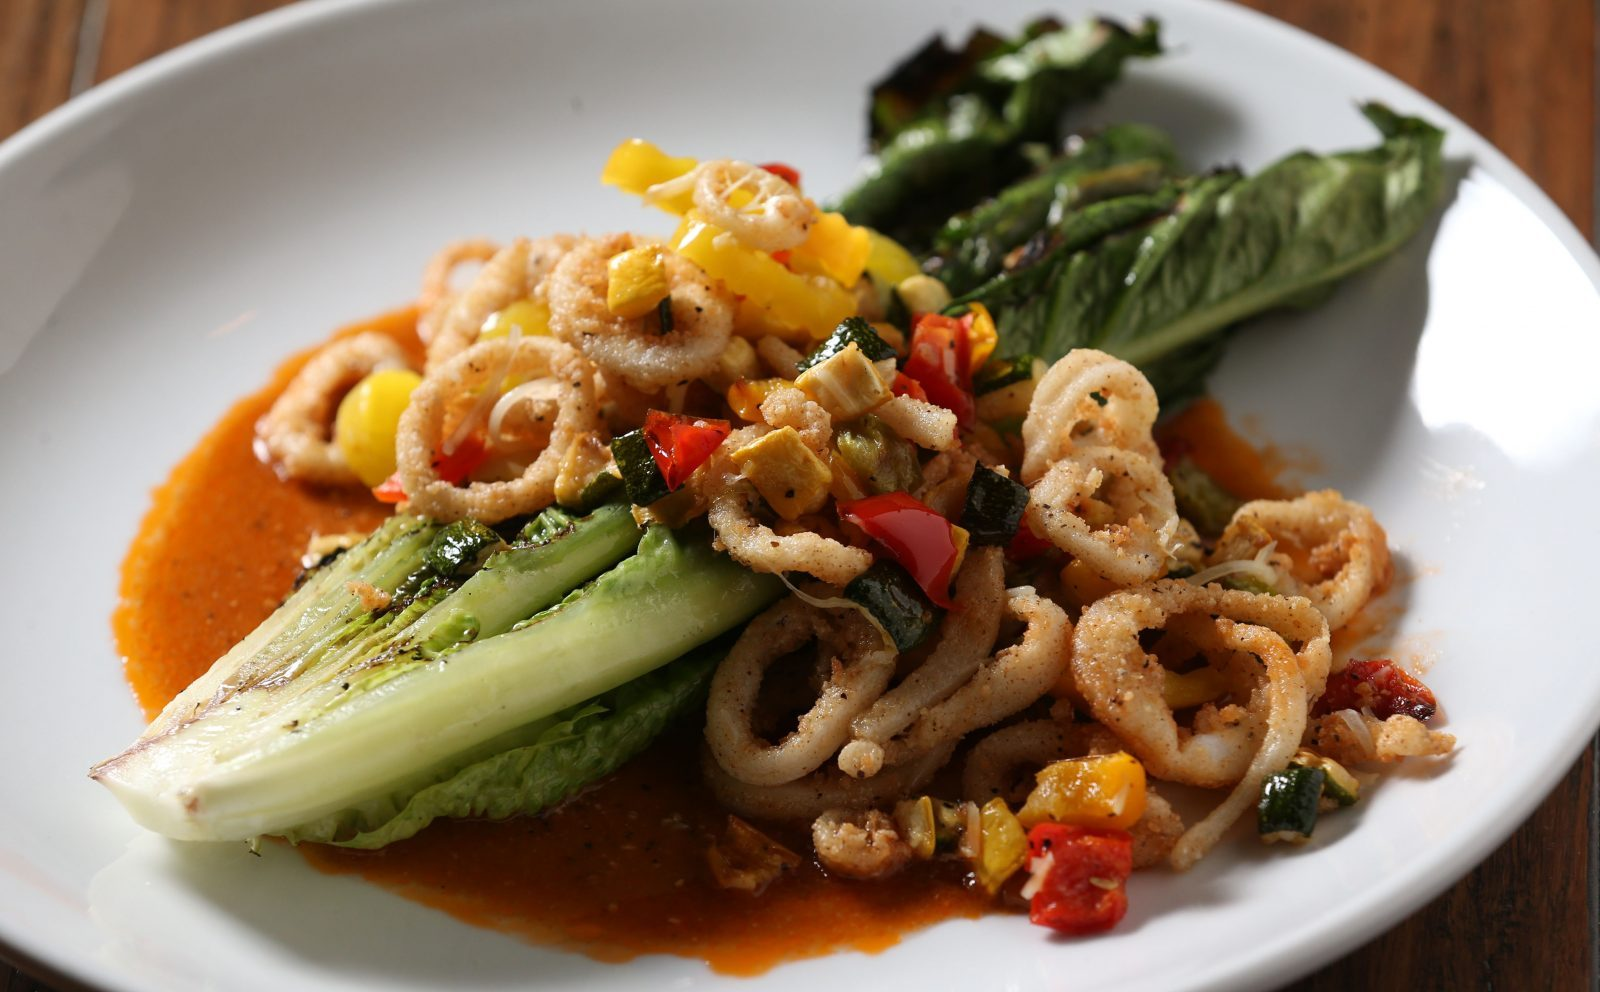 Fried calamari and zucchini, tomato, Parmesan, banana peppers and parsley with a spicy tomato basil dressing. (Sharon Cantillon/Buffalo News)